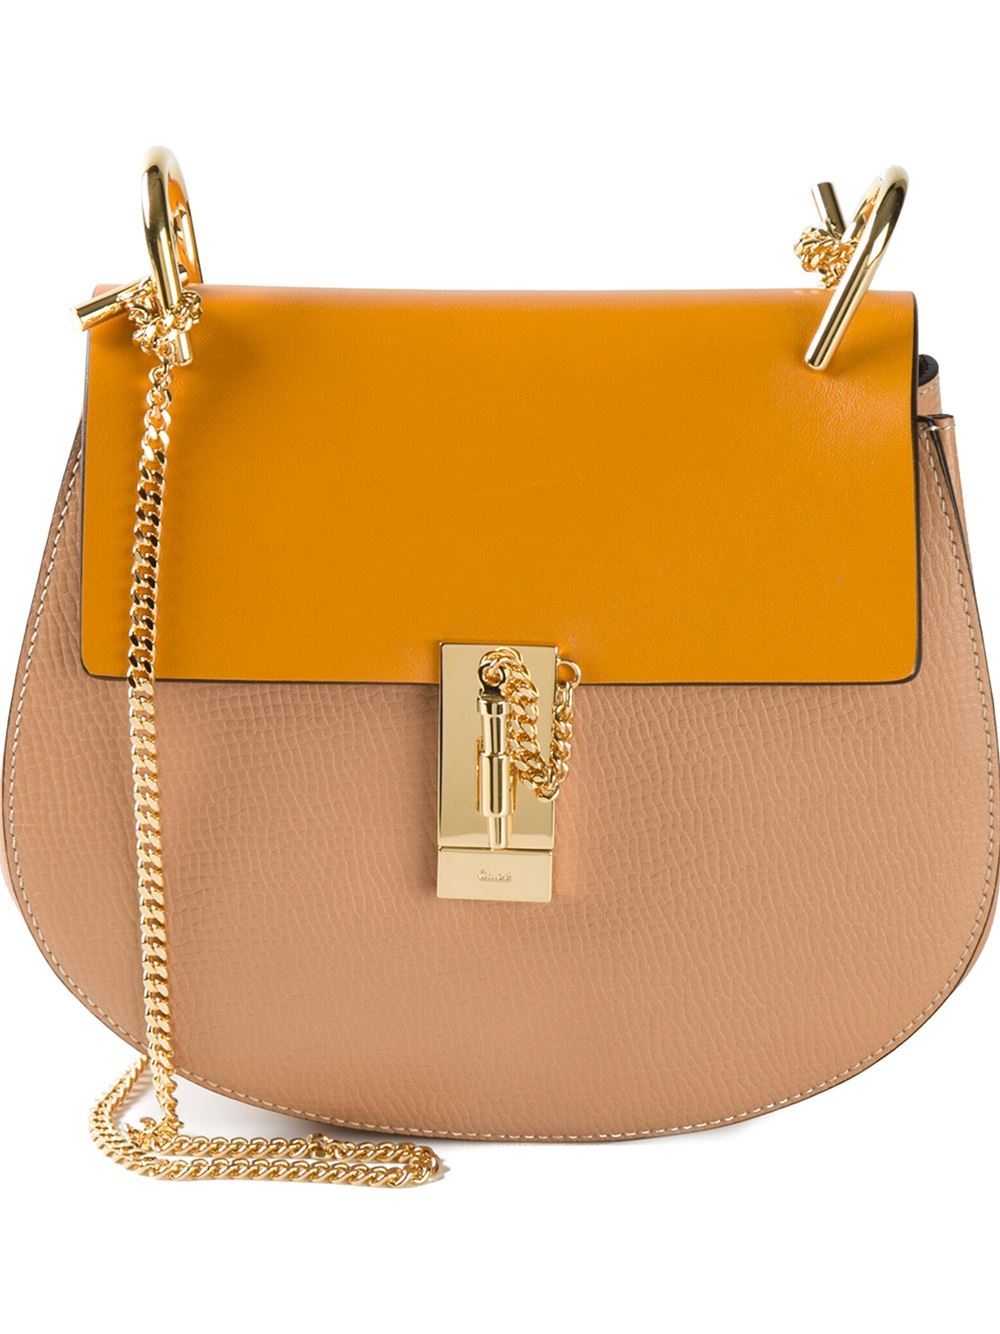 uk chloe replica bags outlet sale